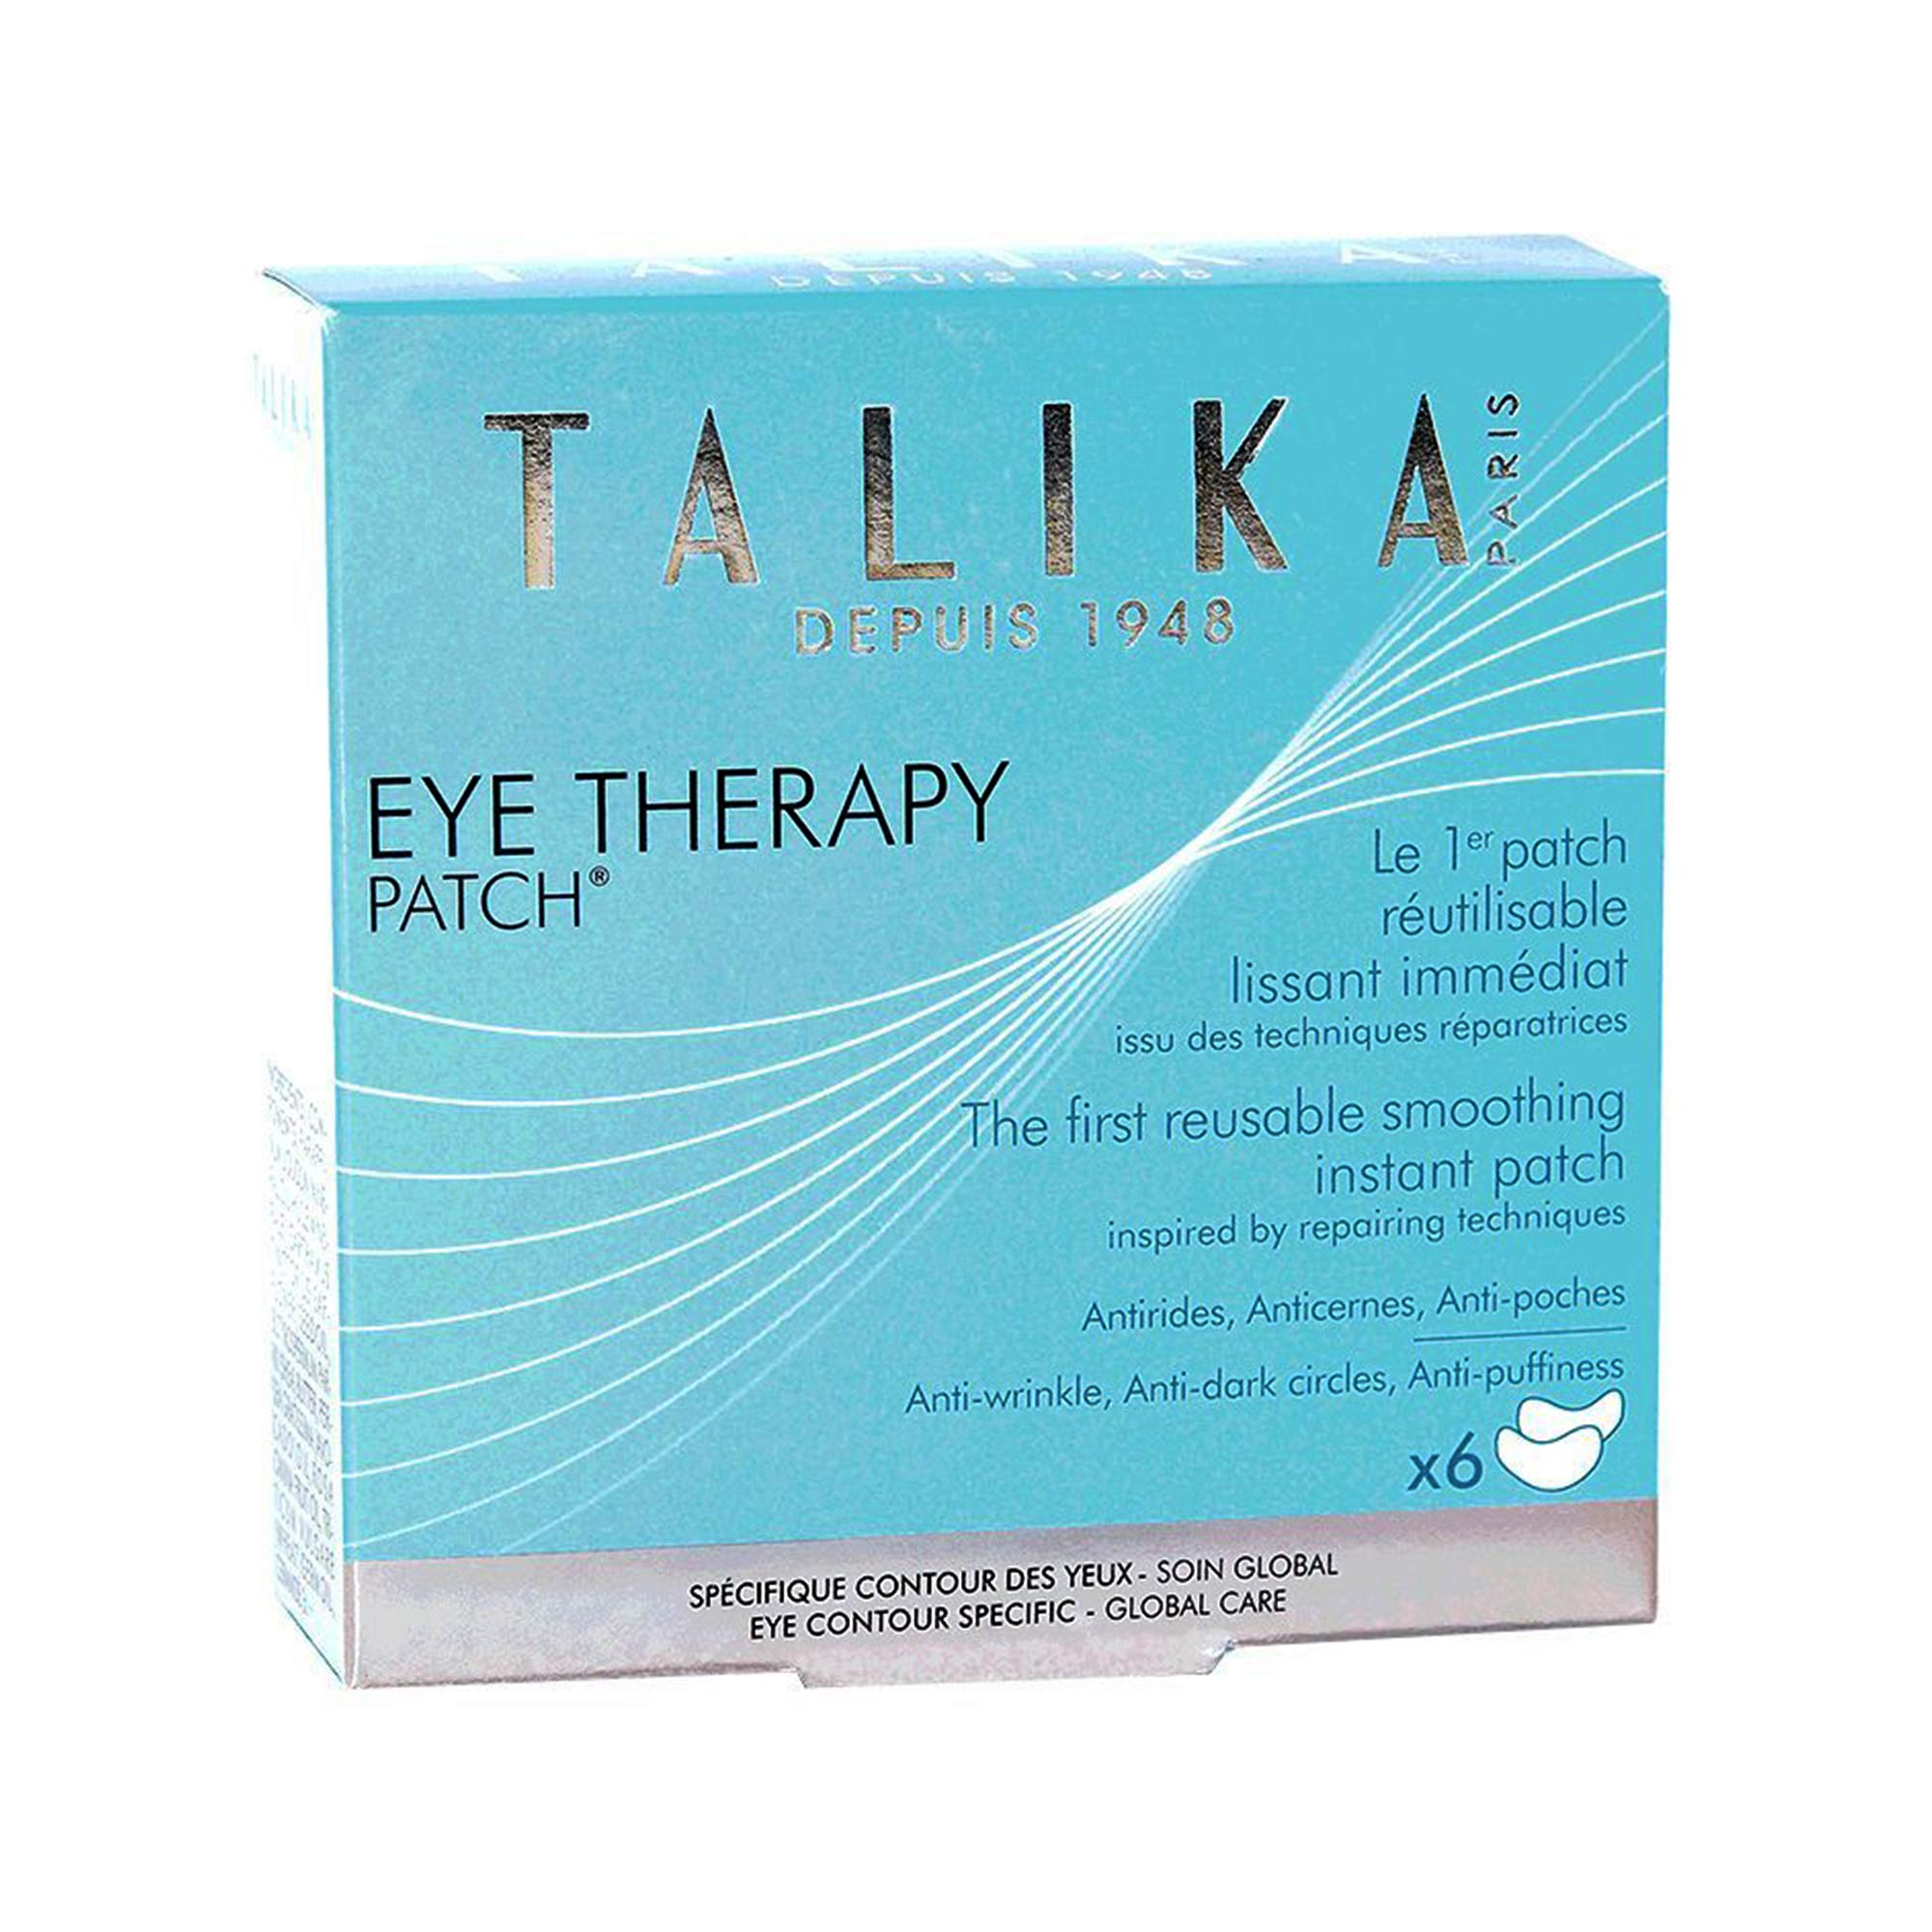 Eye Therapy Patch Refills Mask, 6 count